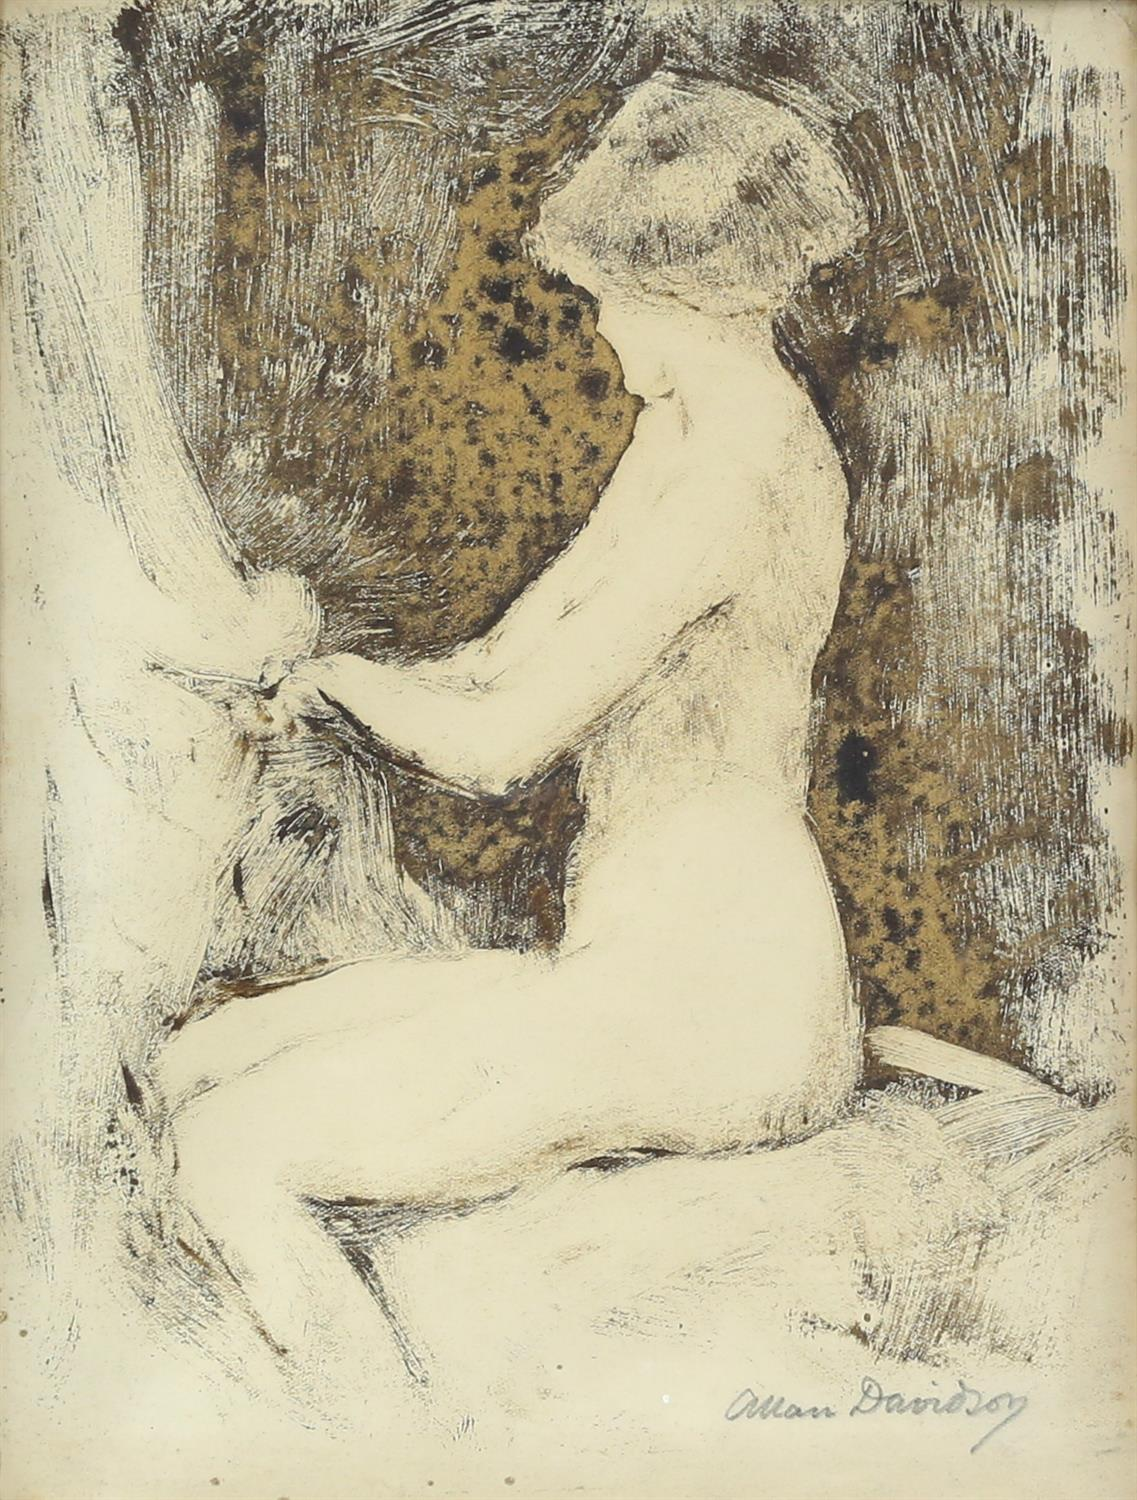 Allan Davidson (British, 1873-1932), seated nude, signed, oil on paper, 22cm x 16.5cm,